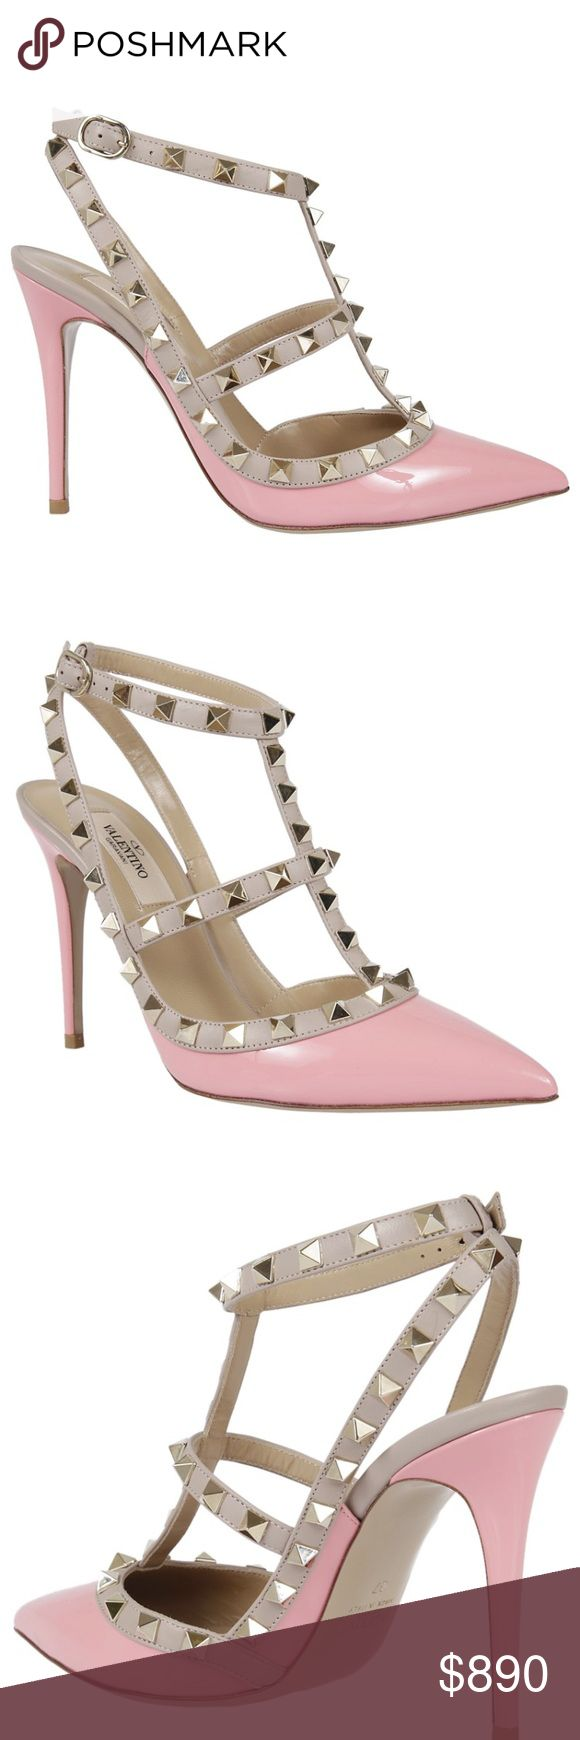 💕SALE💕 Pre-Order Valentino Pump Brand New Never worn and comes complete..Accepting Reasonable OFFER... ❌🚫TRADES🚫❌ Valentino Shoes Sandals